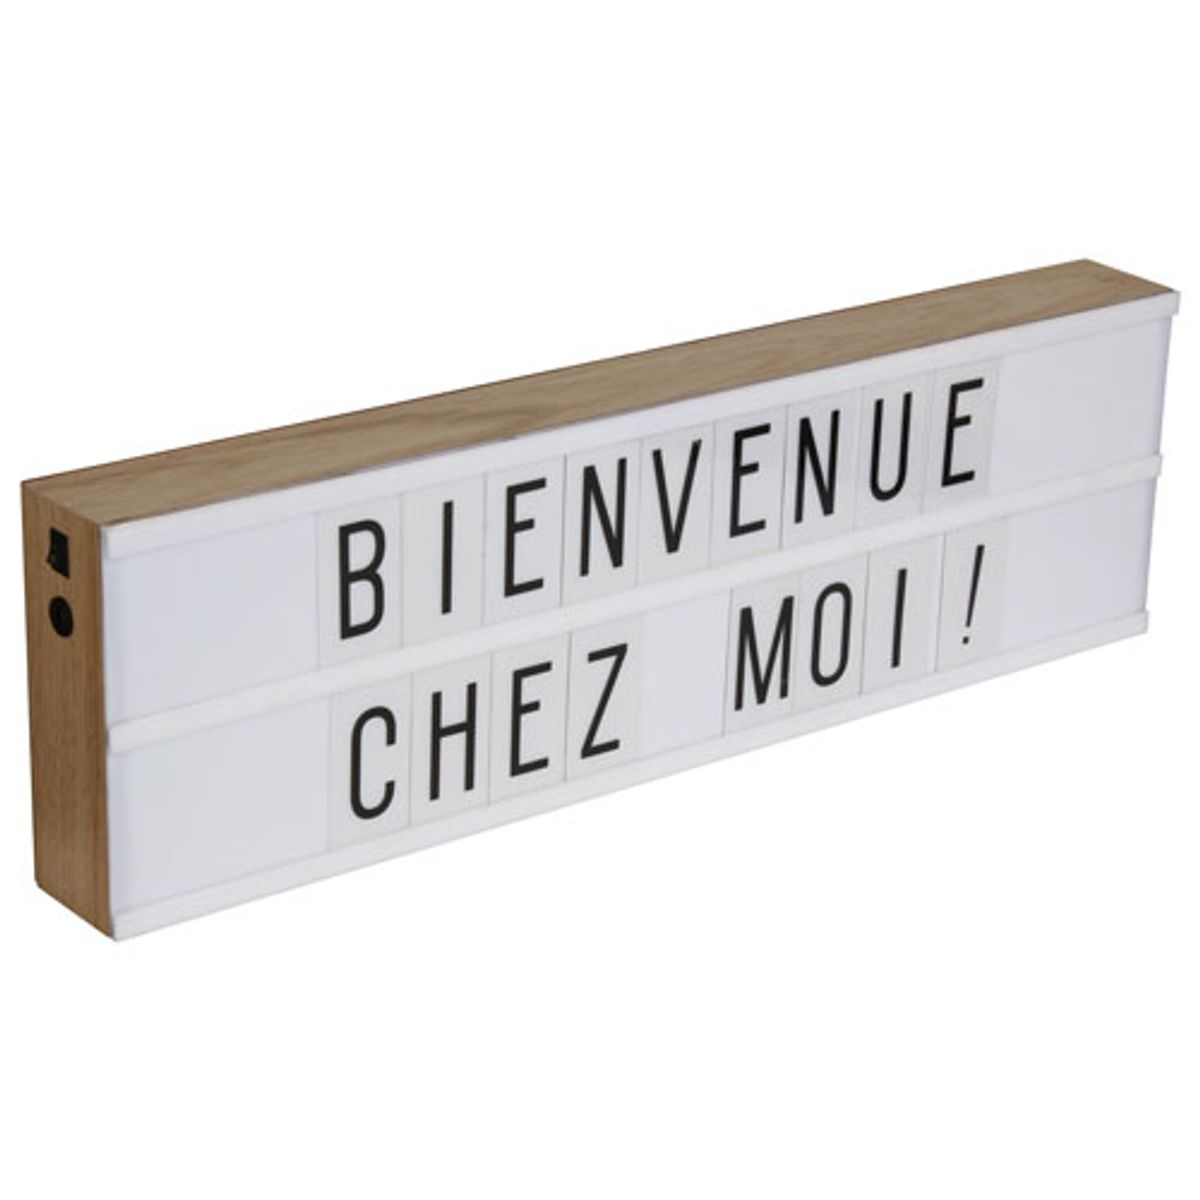 lightbox bo te lumineuse led en bois avec 130 lettres et symboles decoclico. Black Bedroom Furniture Sets. Home Design Ideas